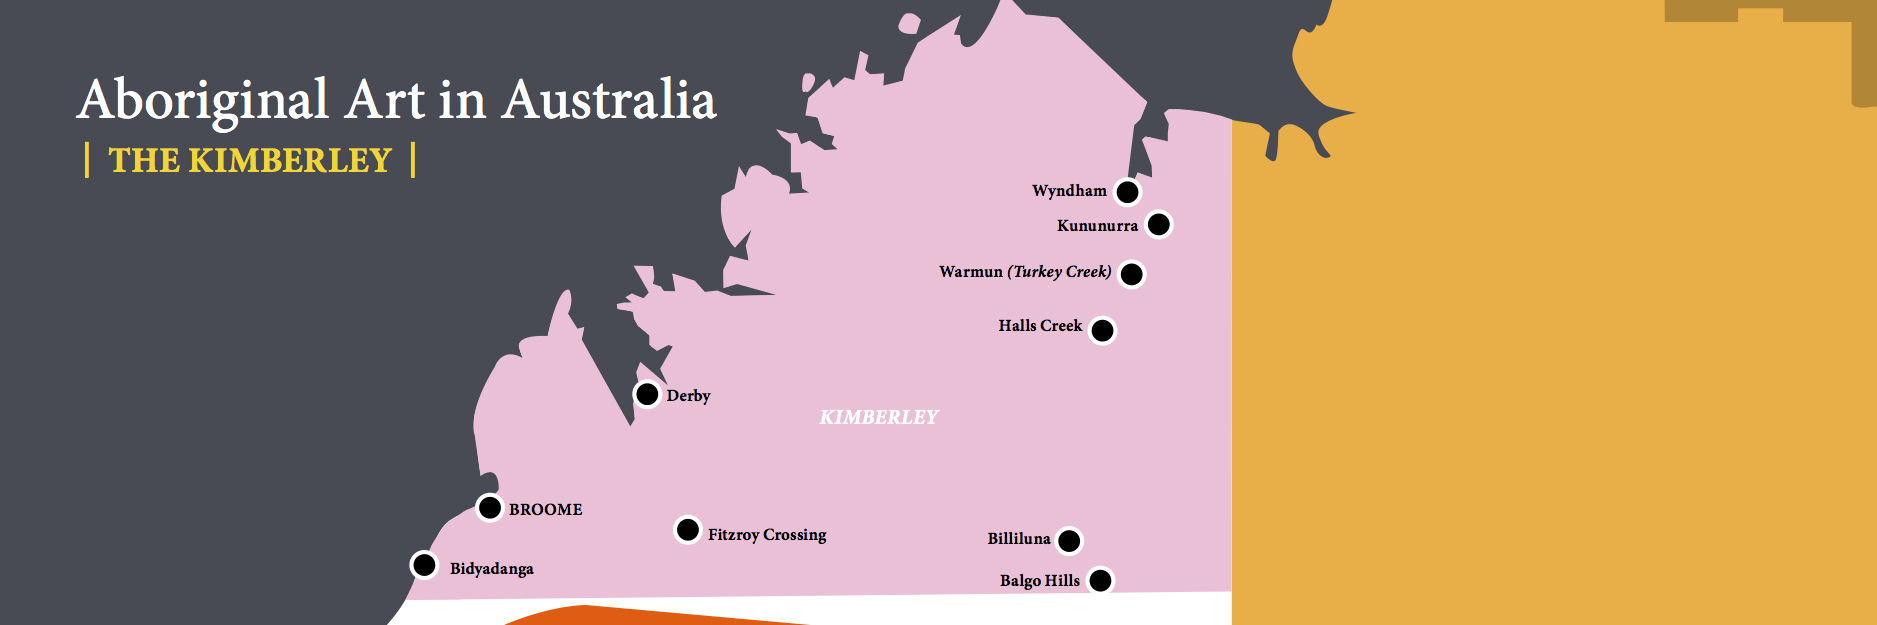 LDFA_Website Maps_8 copy - 3 The Kimberley